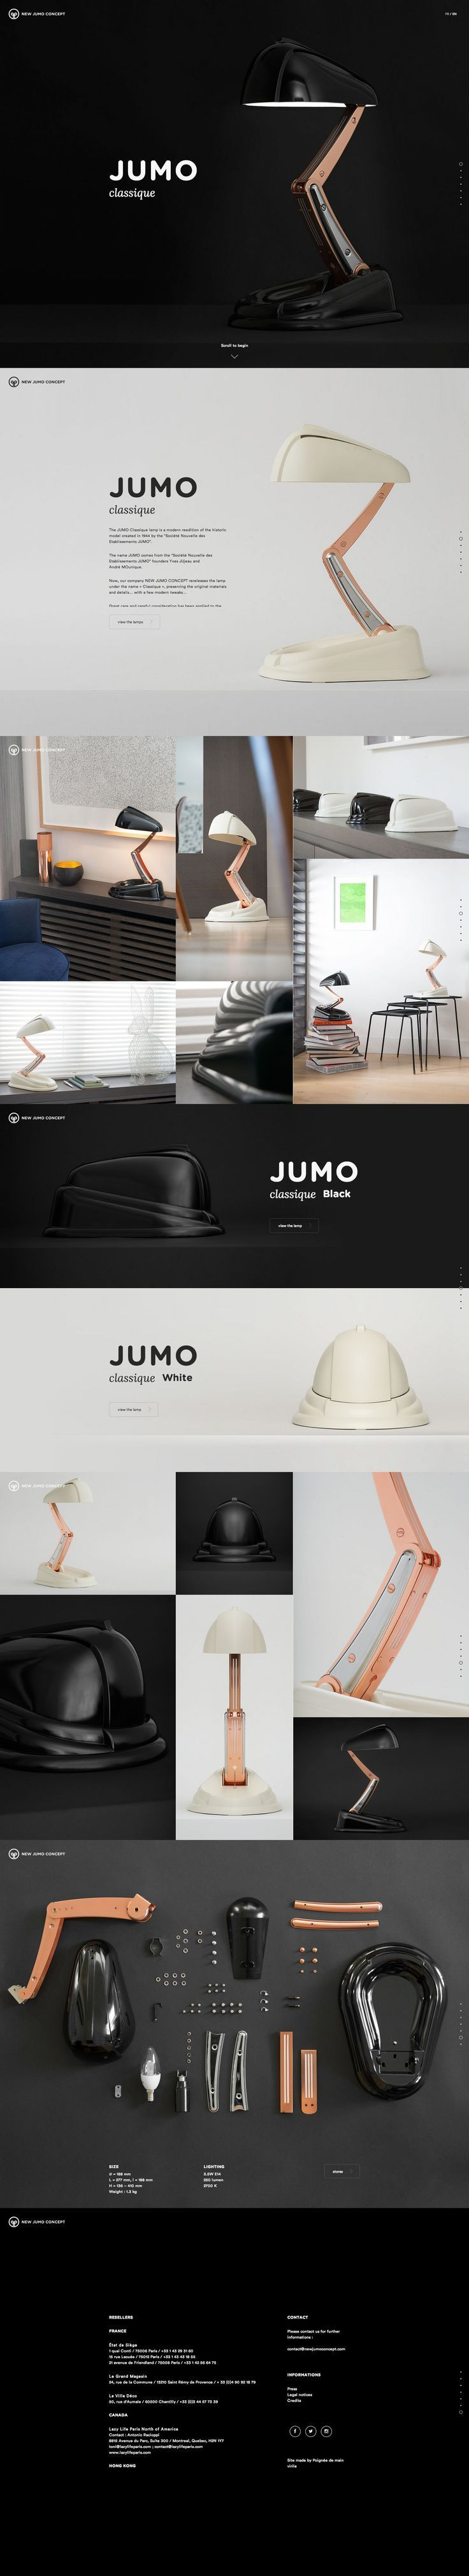 30 Examples of Trendy & Modern Web Design | From up North